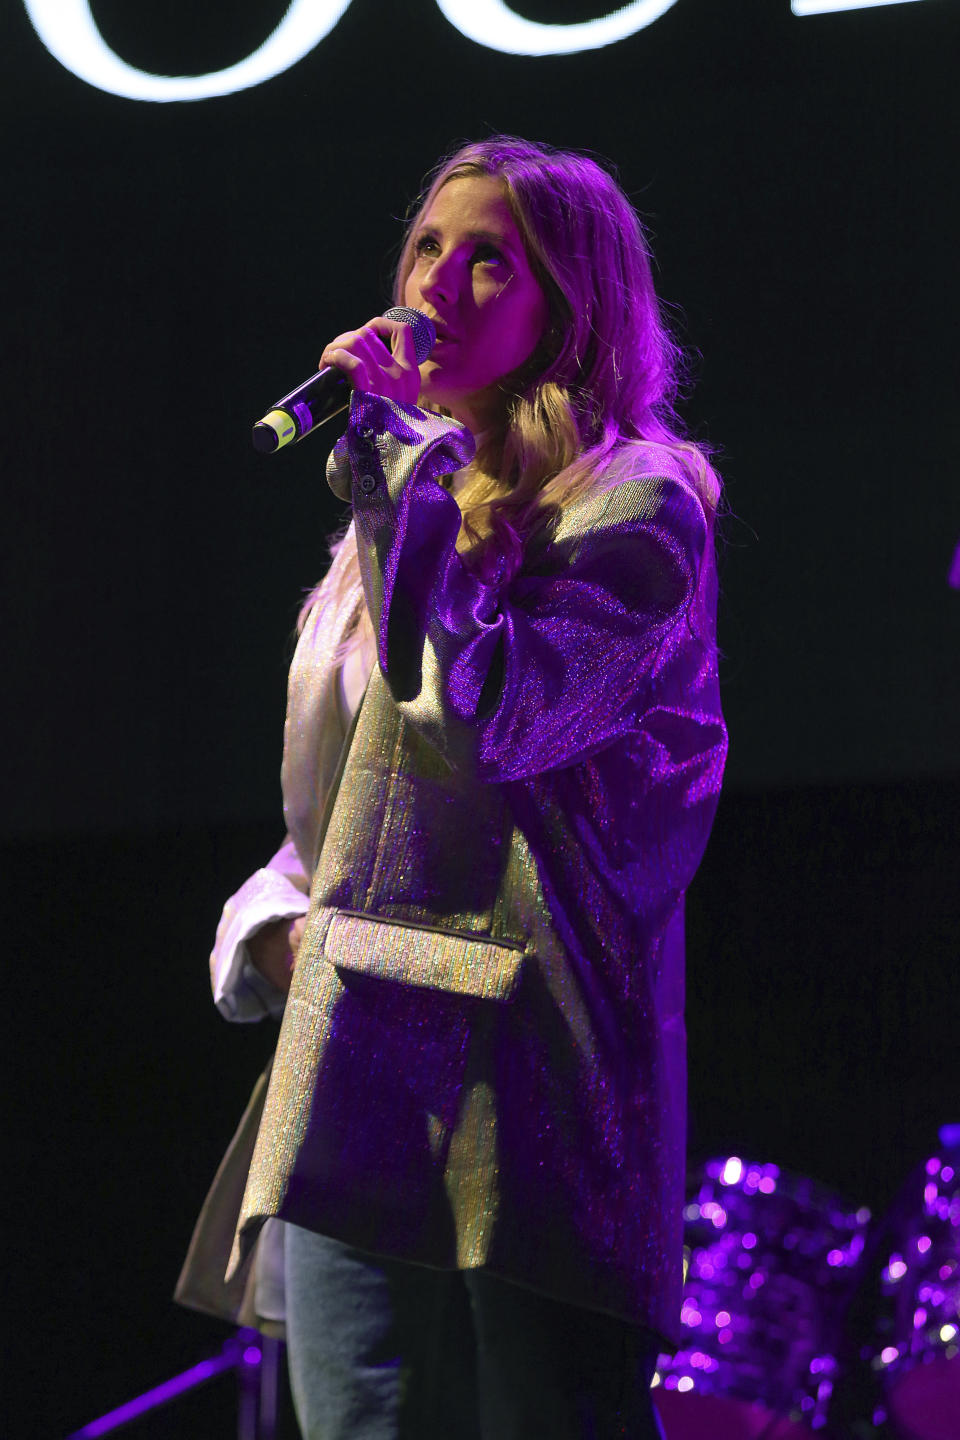 """Ellie Goulding performs live on stage at """"The World's Biggest Sleep Out"""" event at The Rose Bowl on Saturday, Dec. 7, 2019, in Pasadena, Calif. (Photo by Willy Sanjuan/Invision/AP)"""